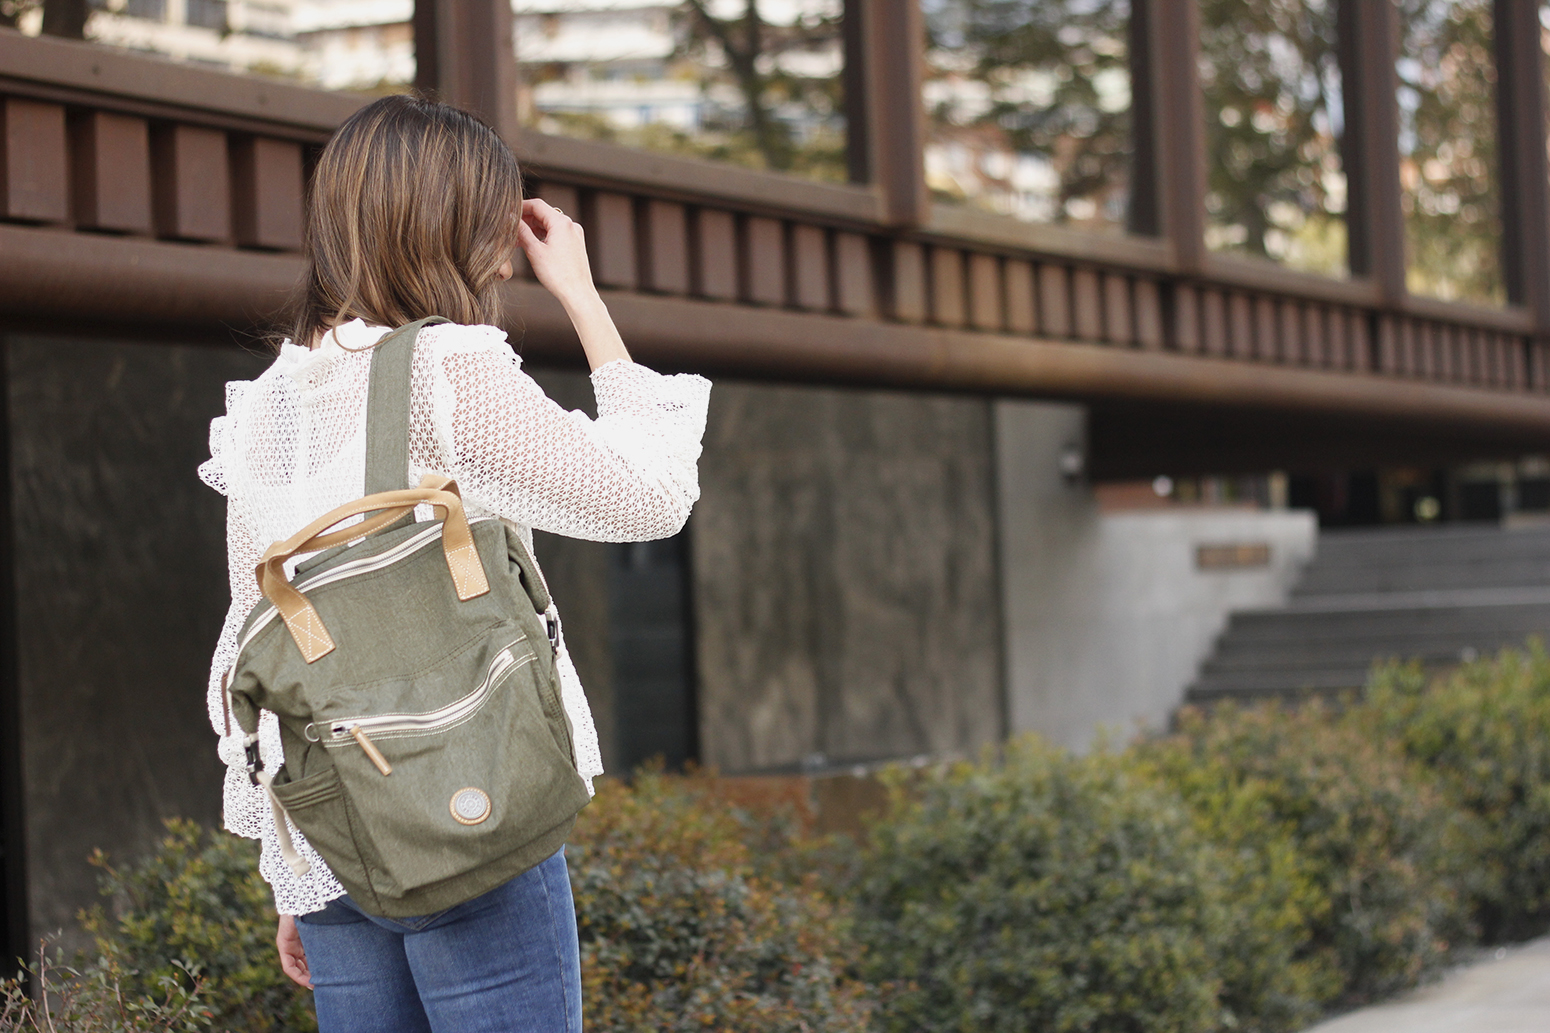 kipling backpack transformation collection khaki white lace blouse casual street style casual outfit 201913